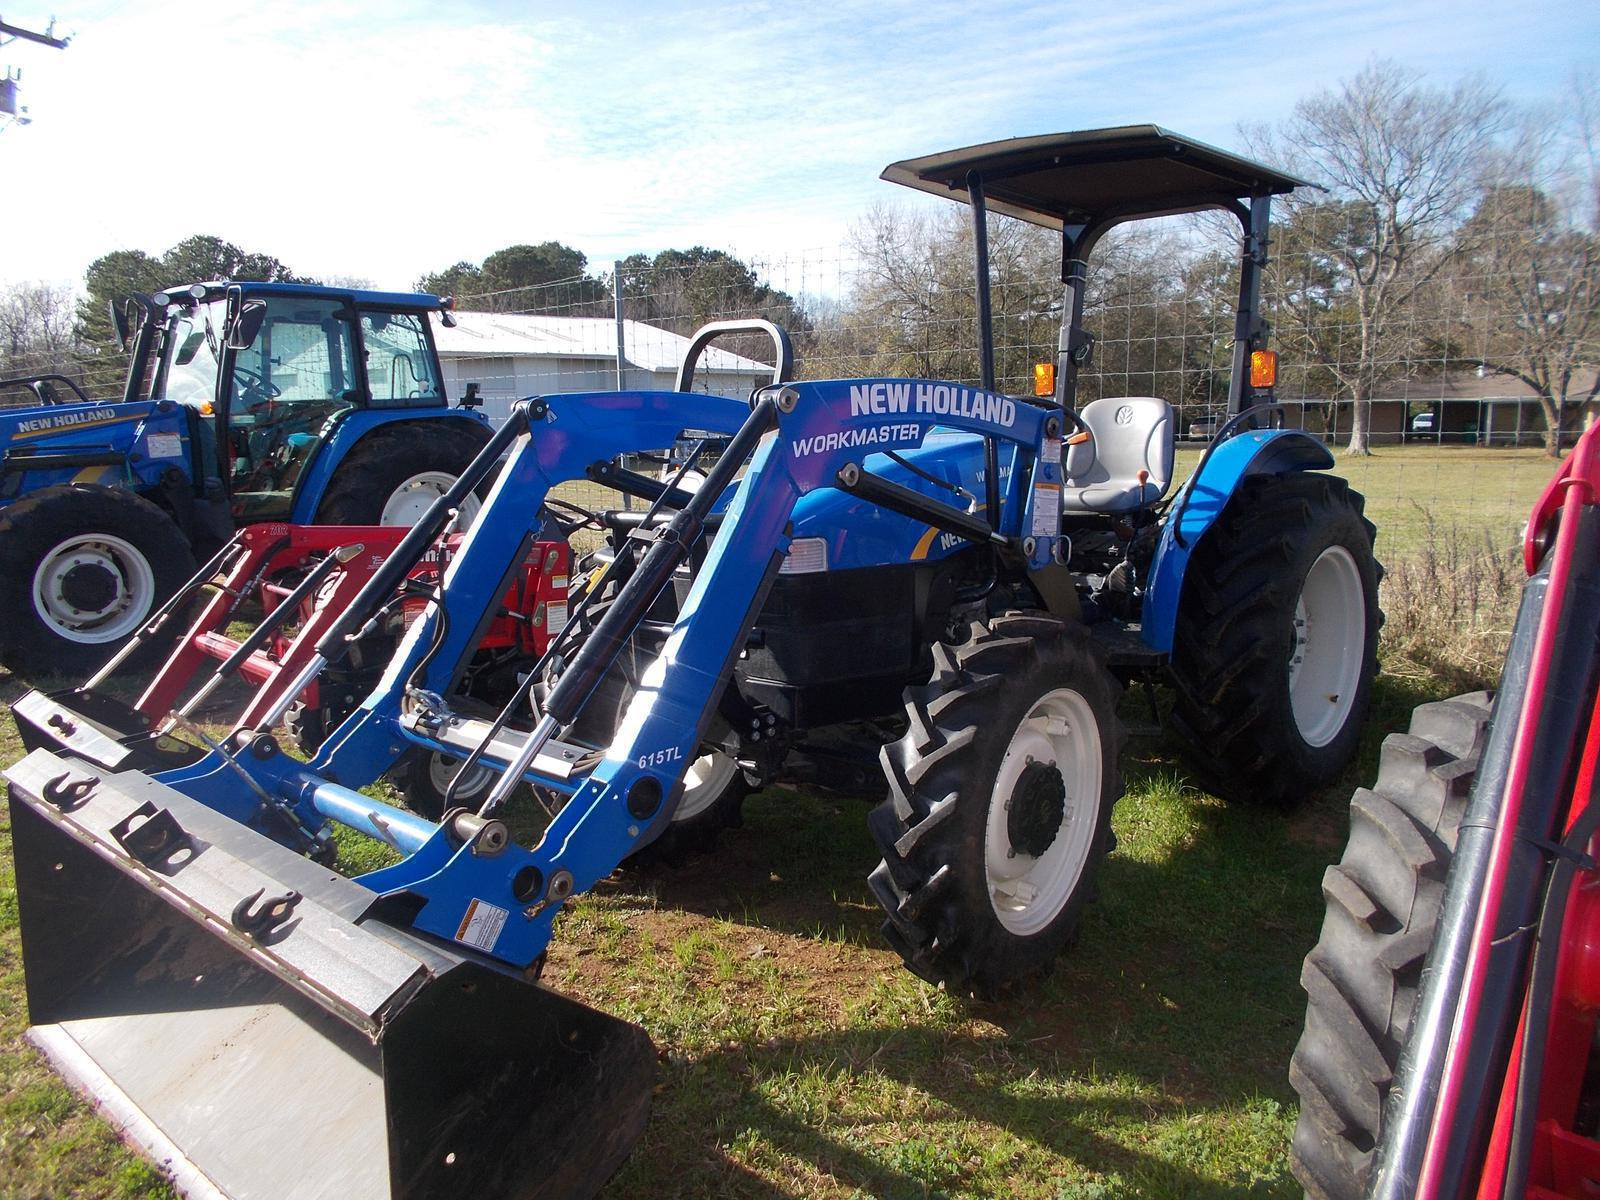 Inventory Collins Tractor and Equipment Crockett, TX (936) 544-3157